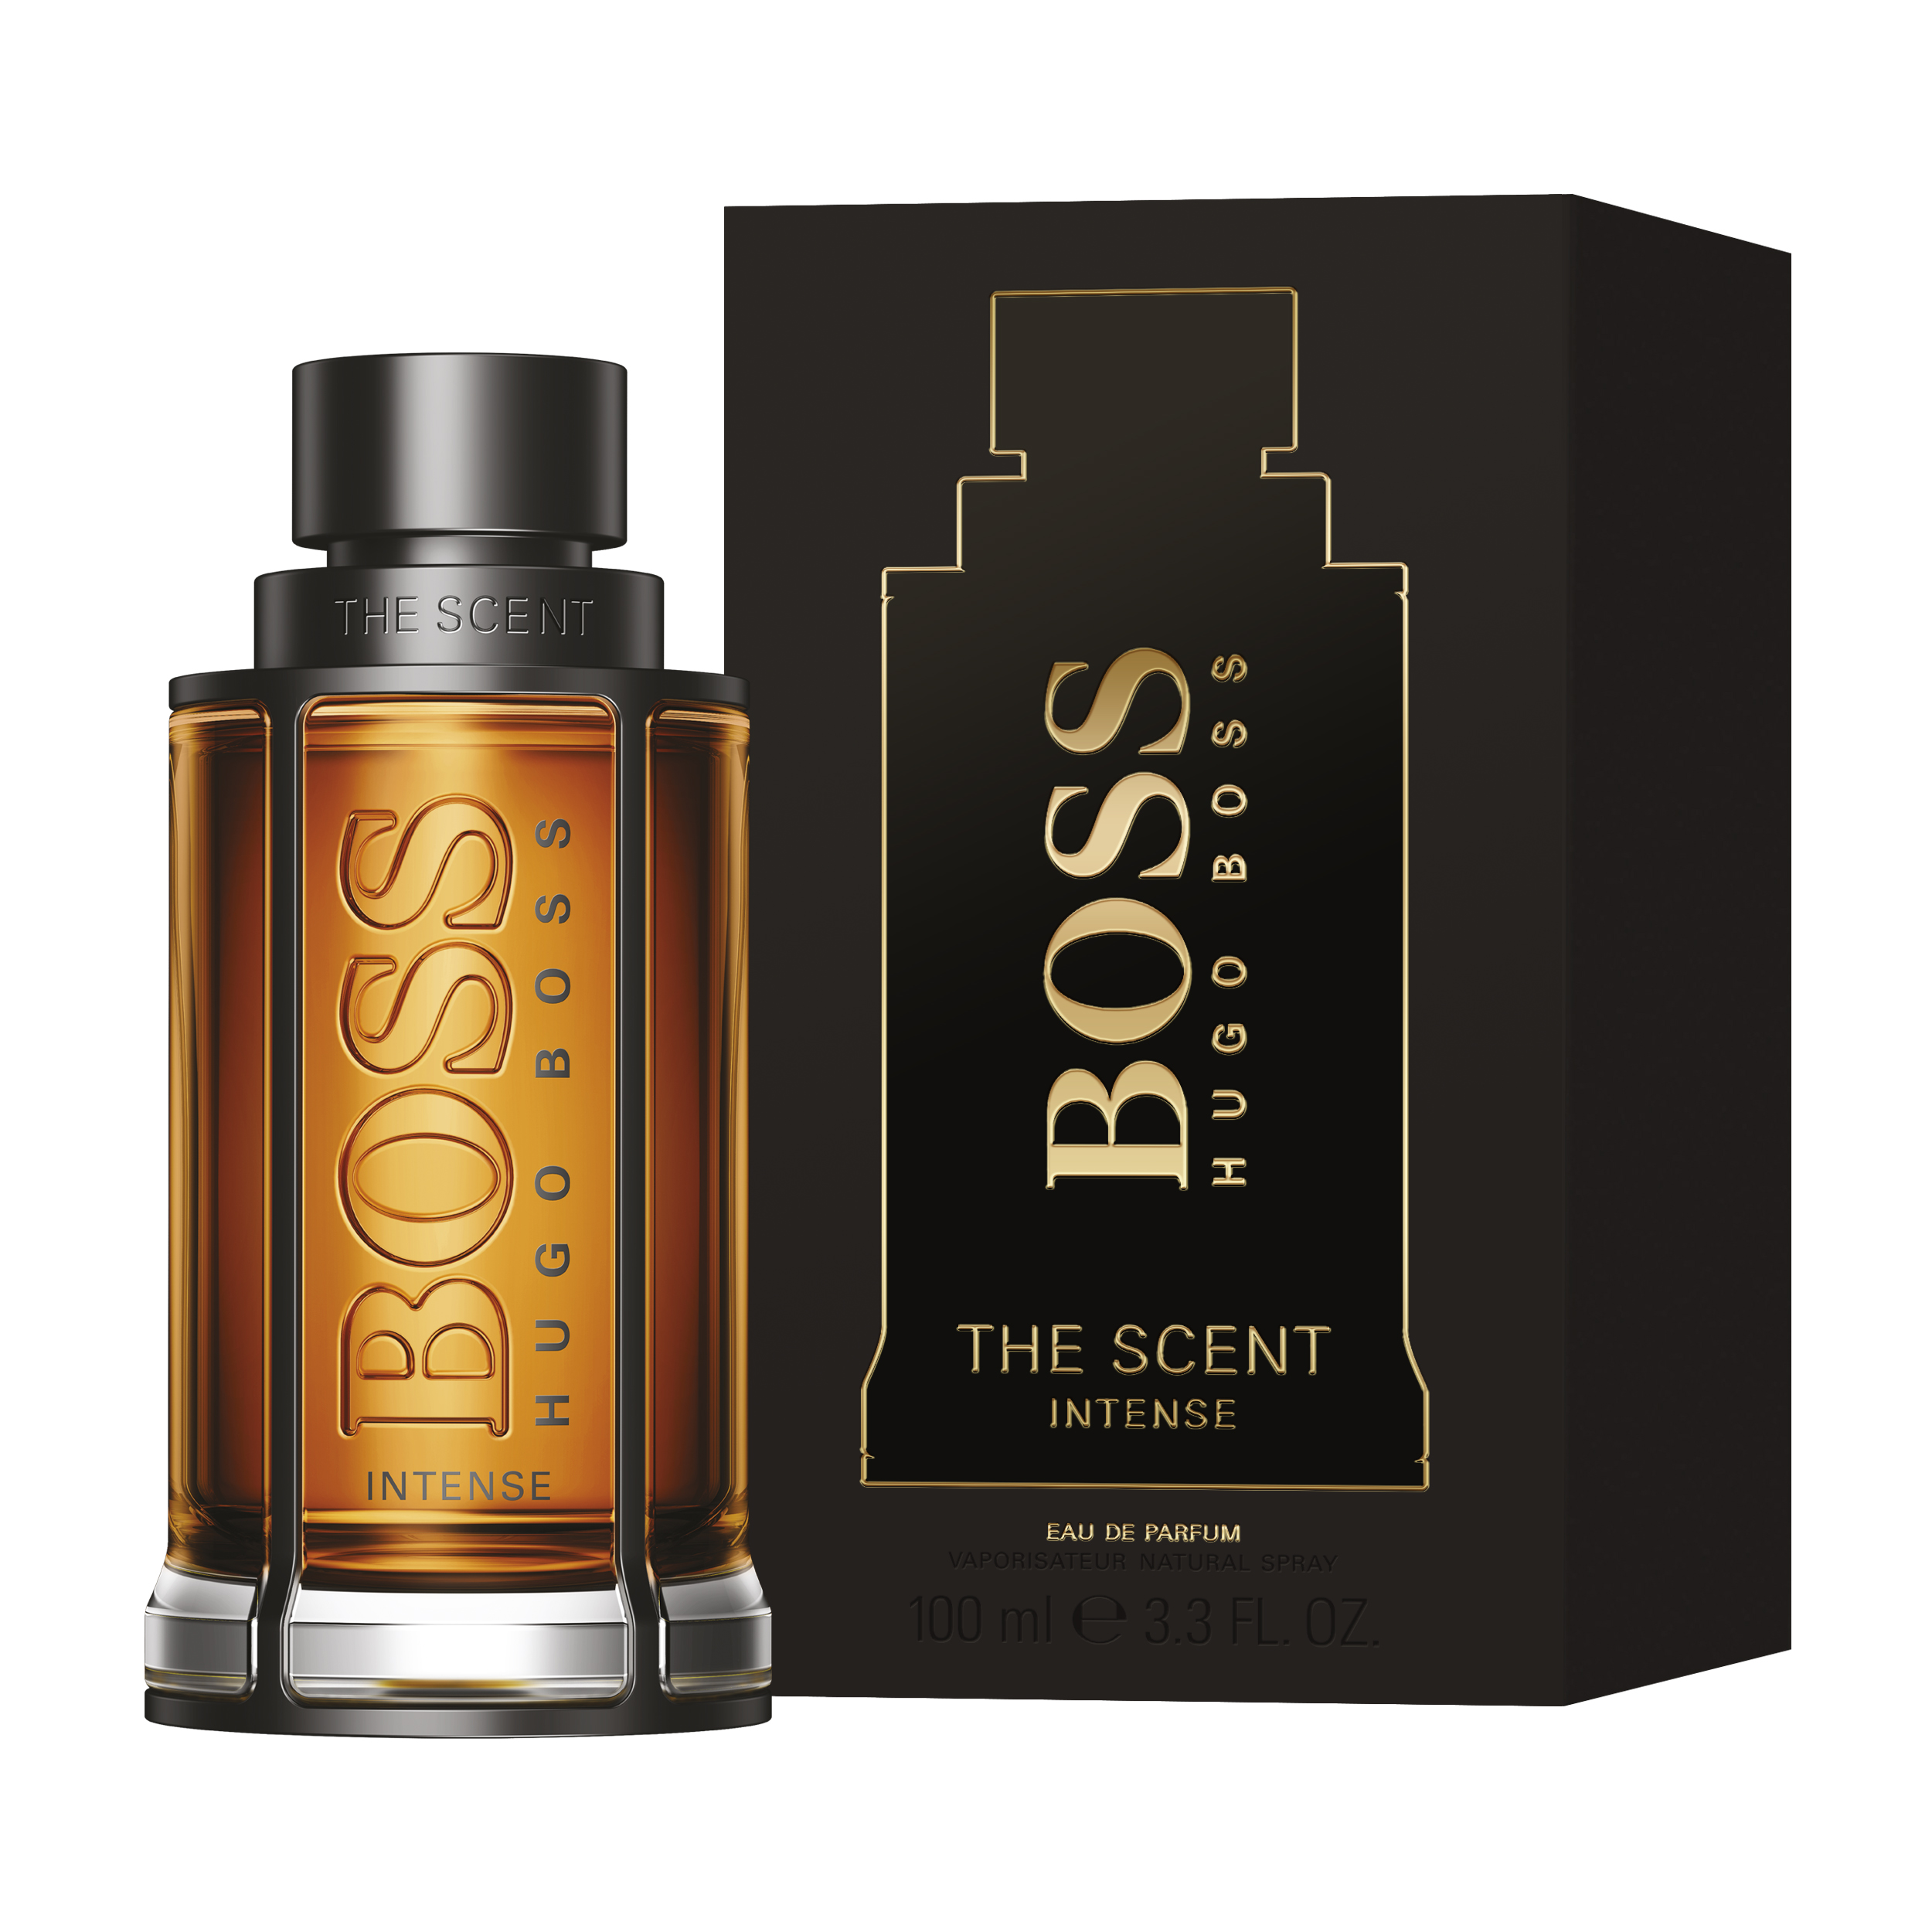 The Scent Intense EdP